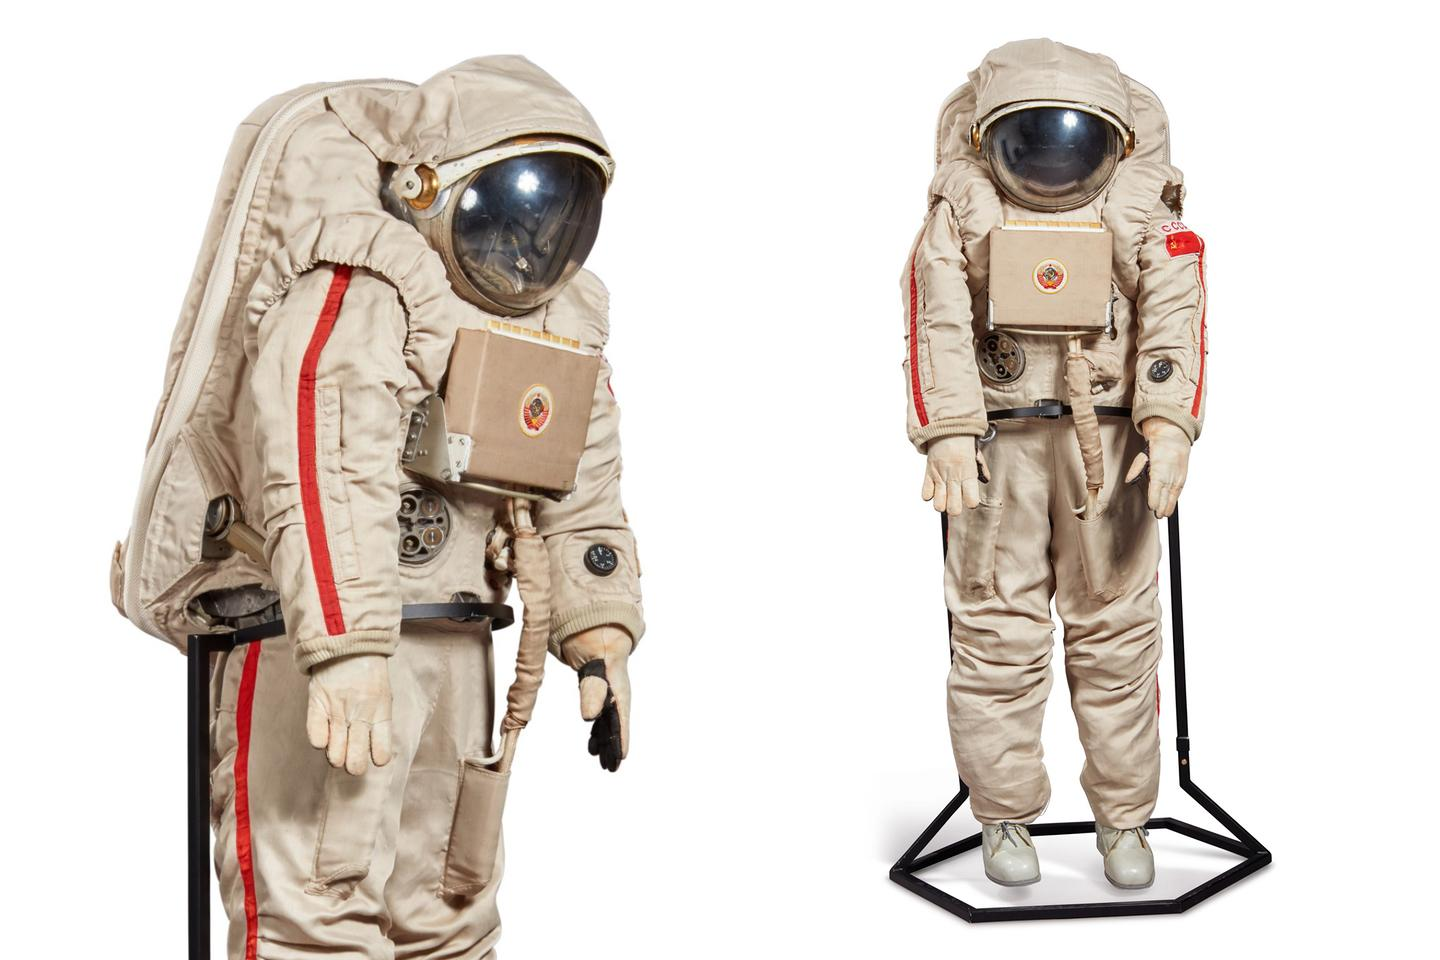 """The Krechet-94 (""""Gyrfalcon"""") lunar EVA spacesuit was designed to be used on Moonwalks as part of the ill-fated N-1/L-3 Soviet lunar program. The N1 was the Soviet counterpart to the American Saturn V, and remains the most powerful rocket ever built, though each of the four attempts to launch failed. After the death of Sergei Korolev, the chief architect of the Russian space program, the project never recovered, and the N1 program was suspended in 1974, before being officially cancelled in 1976. This Krechet-94 suit was likely made for training, as the LSS controls appear to be a mock-up and are not functional."""